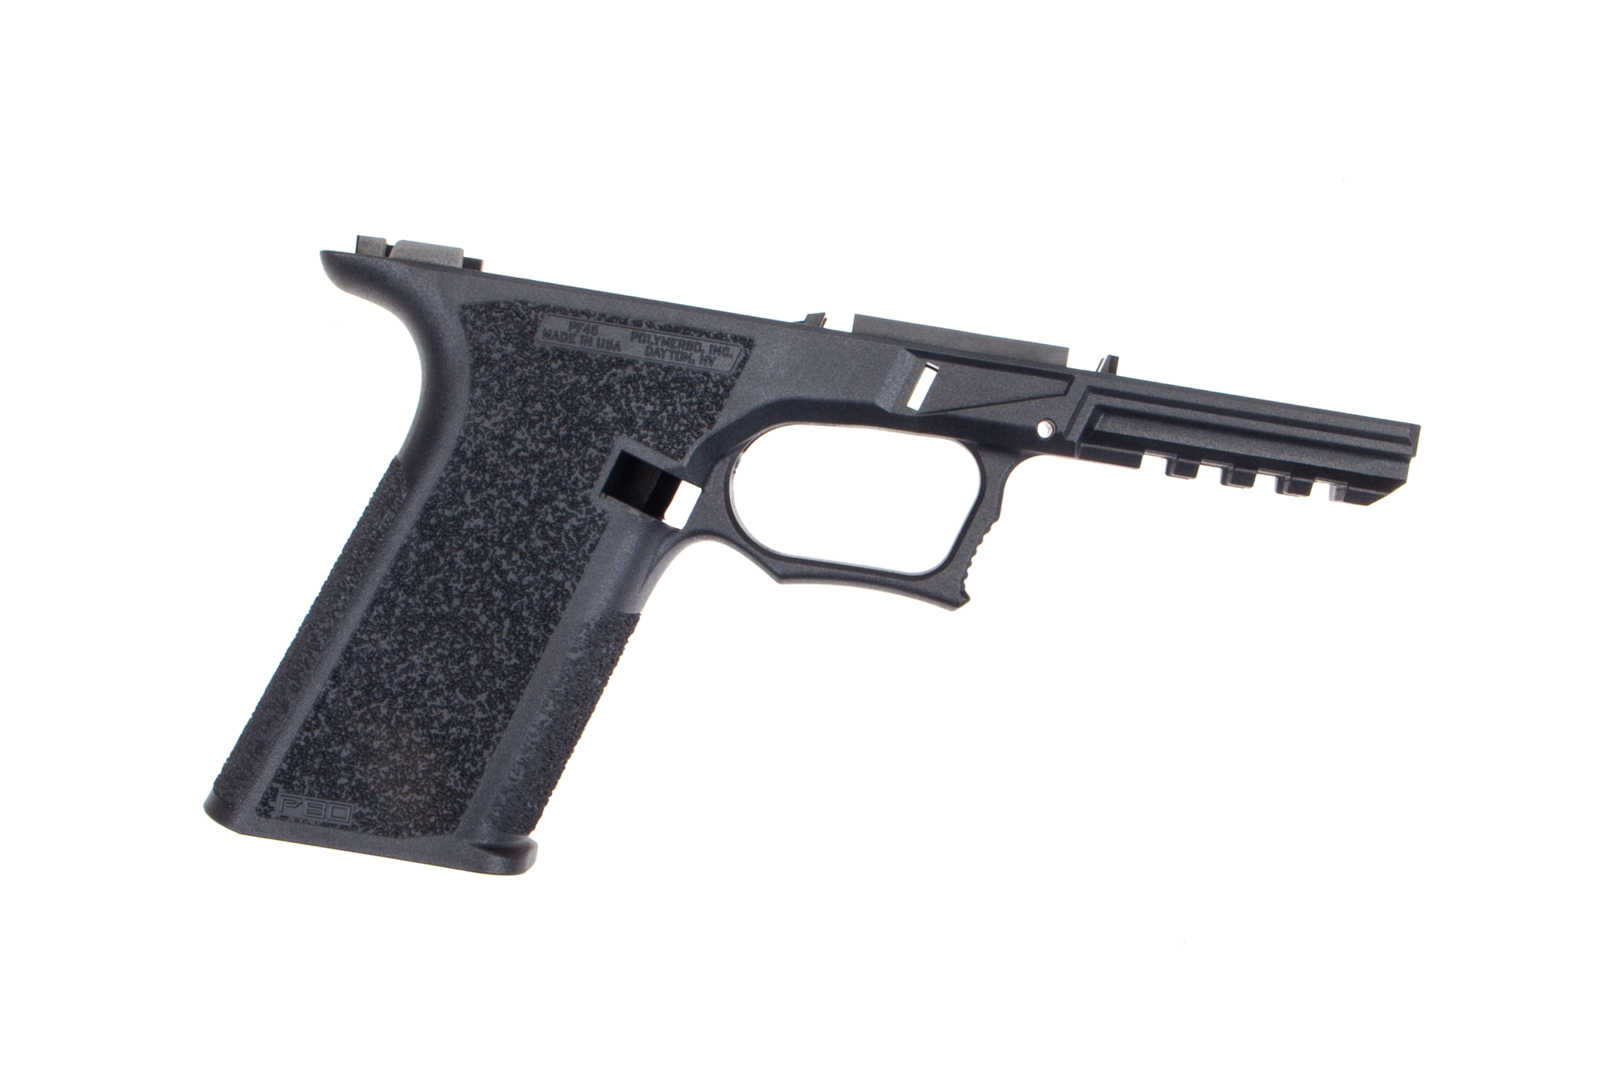 Polymer80 80% Glock 17/22 - PF940v2- Black - 80% Lowers